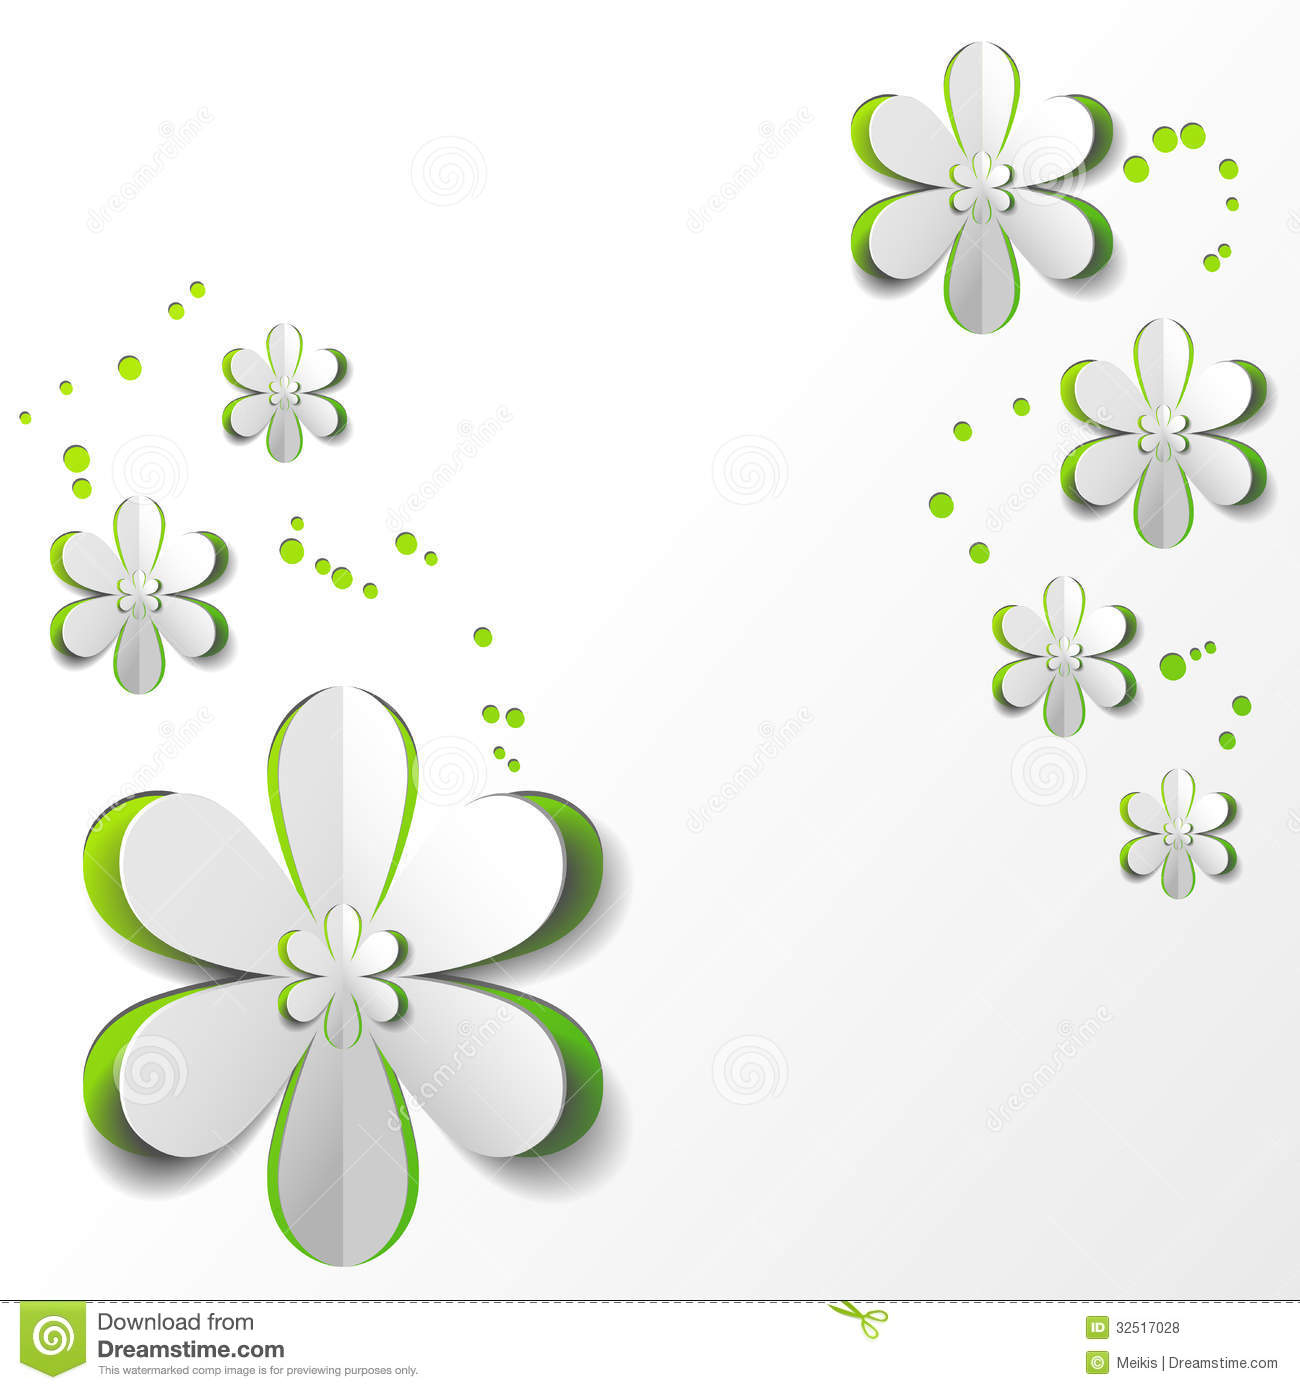 Green and white floral pattern - photo#46